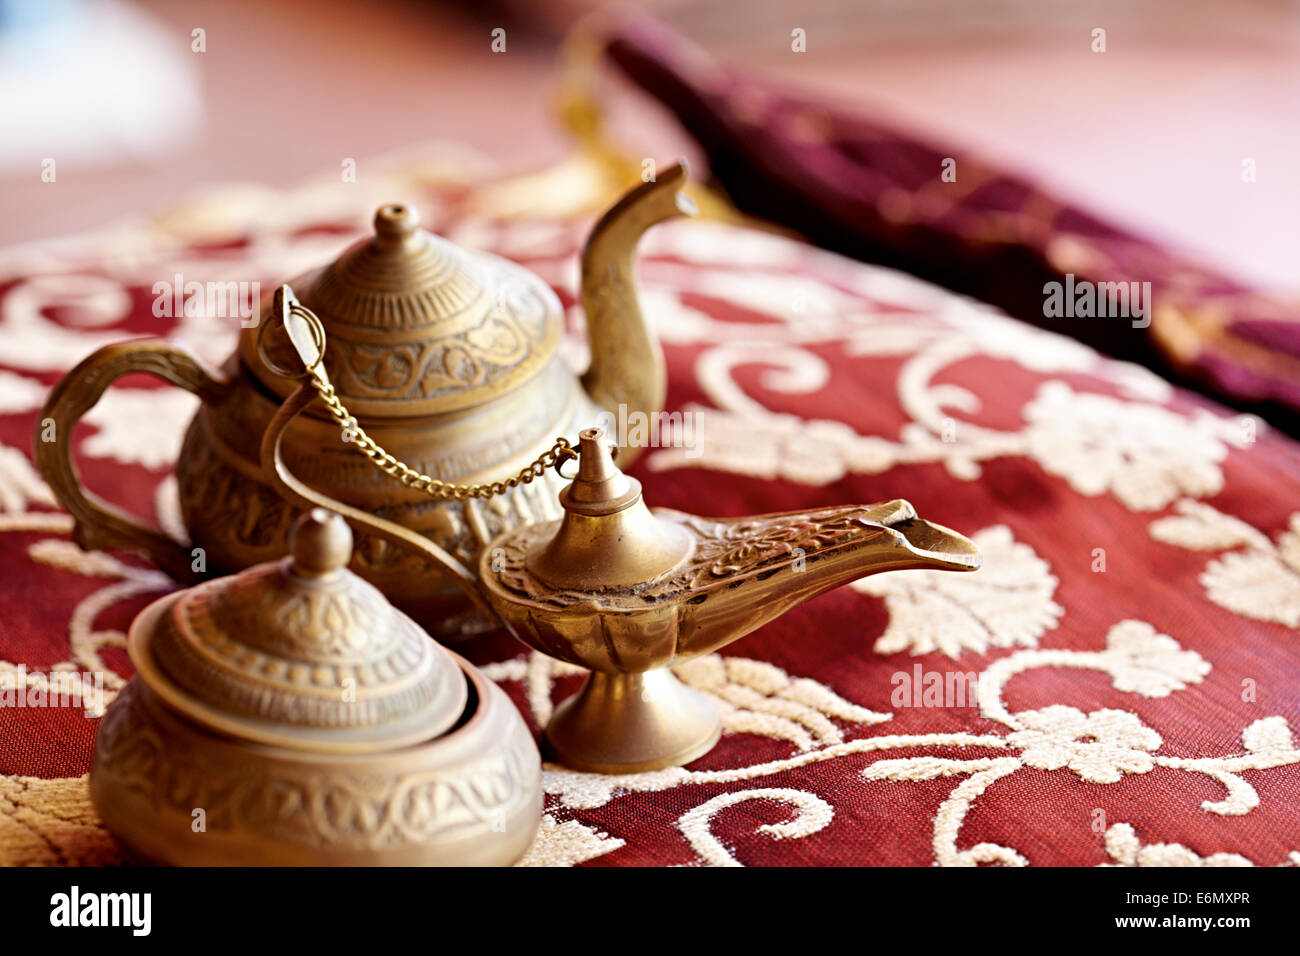 Turkish teapots on red rug - Stock Image